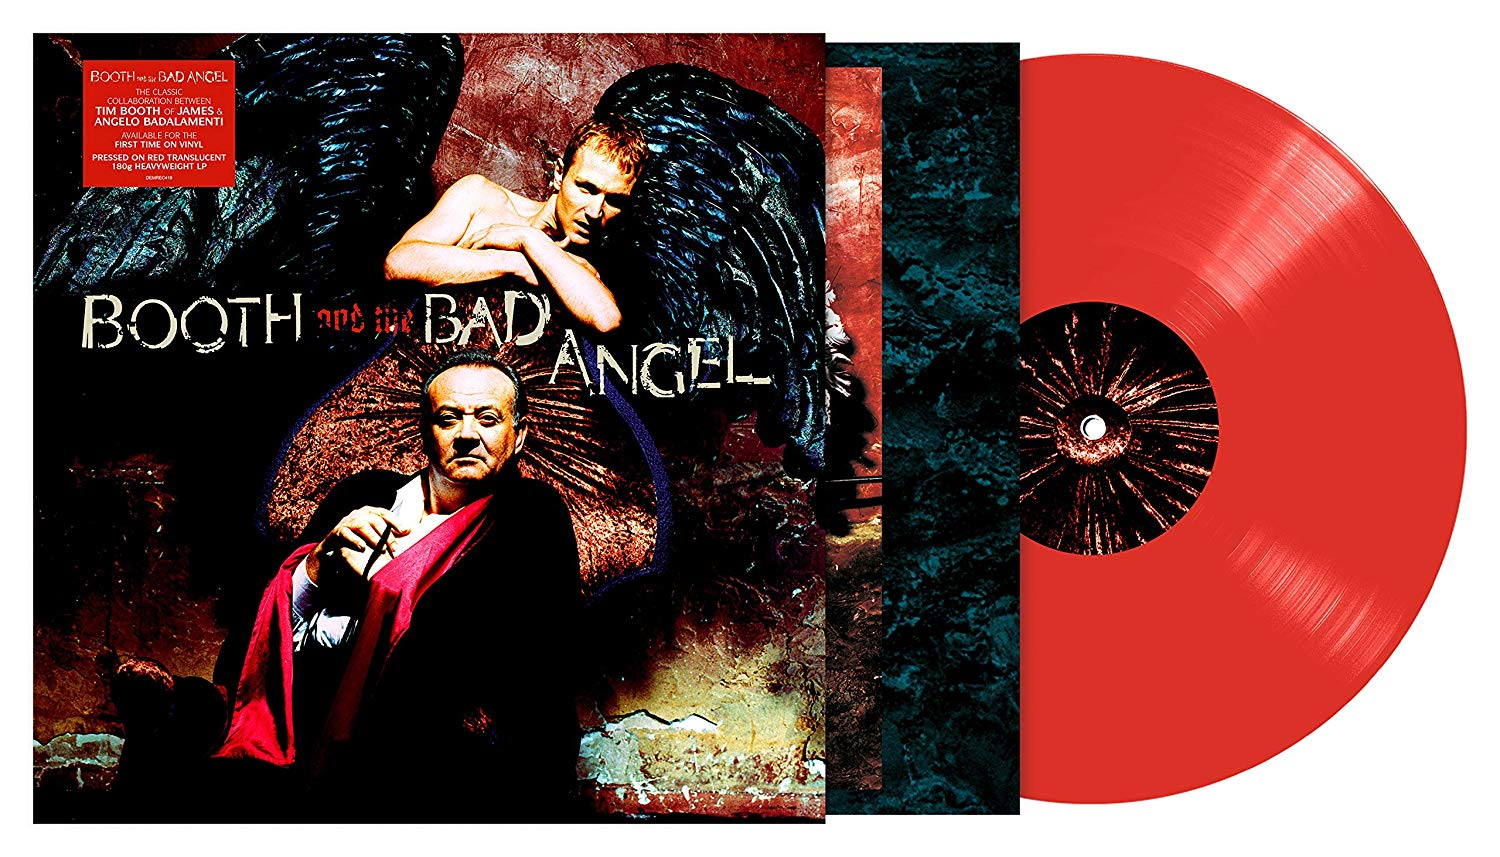 Reissue Review: Booth And The Bad Angel - Booth And The Bad Angel